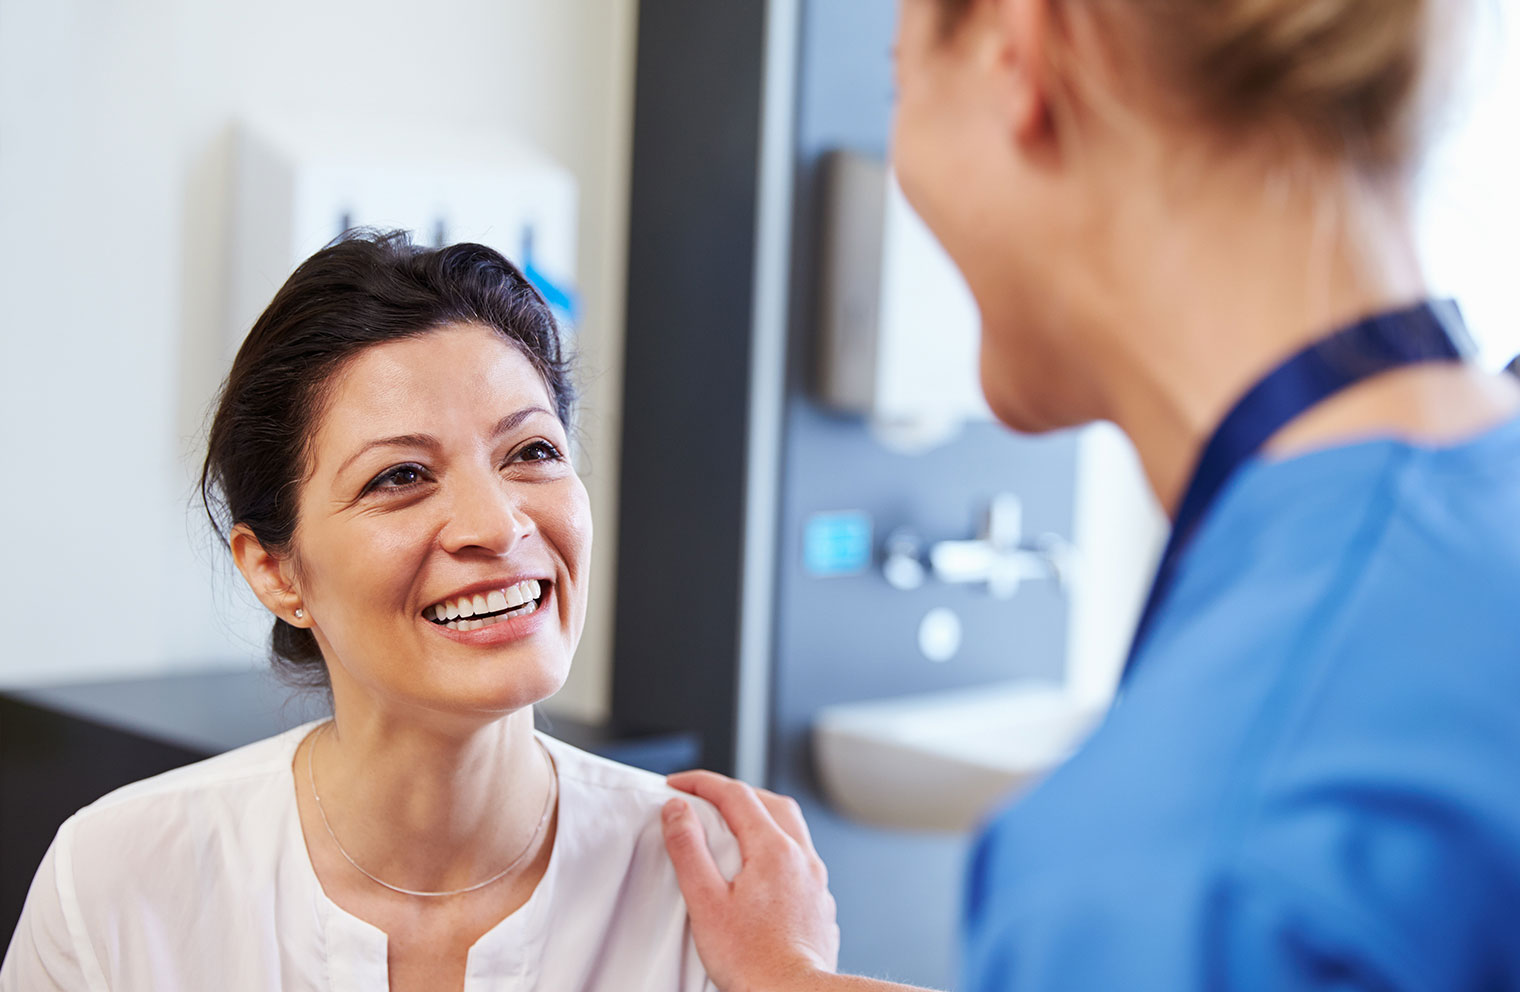 Image of woman smiling as she receives checkup from female doctor.